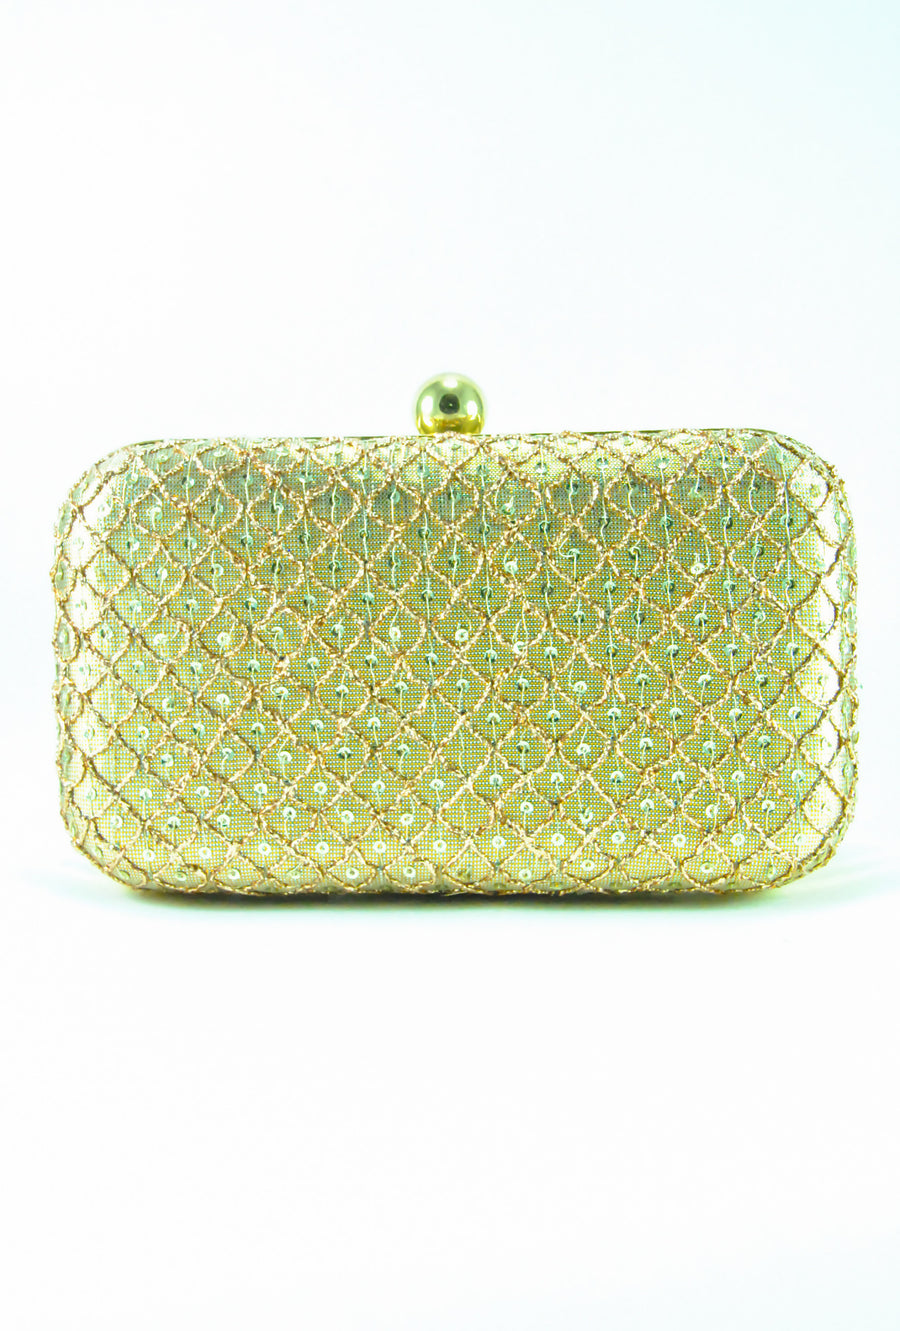 Gold Glitter Clutch - Desi Royale